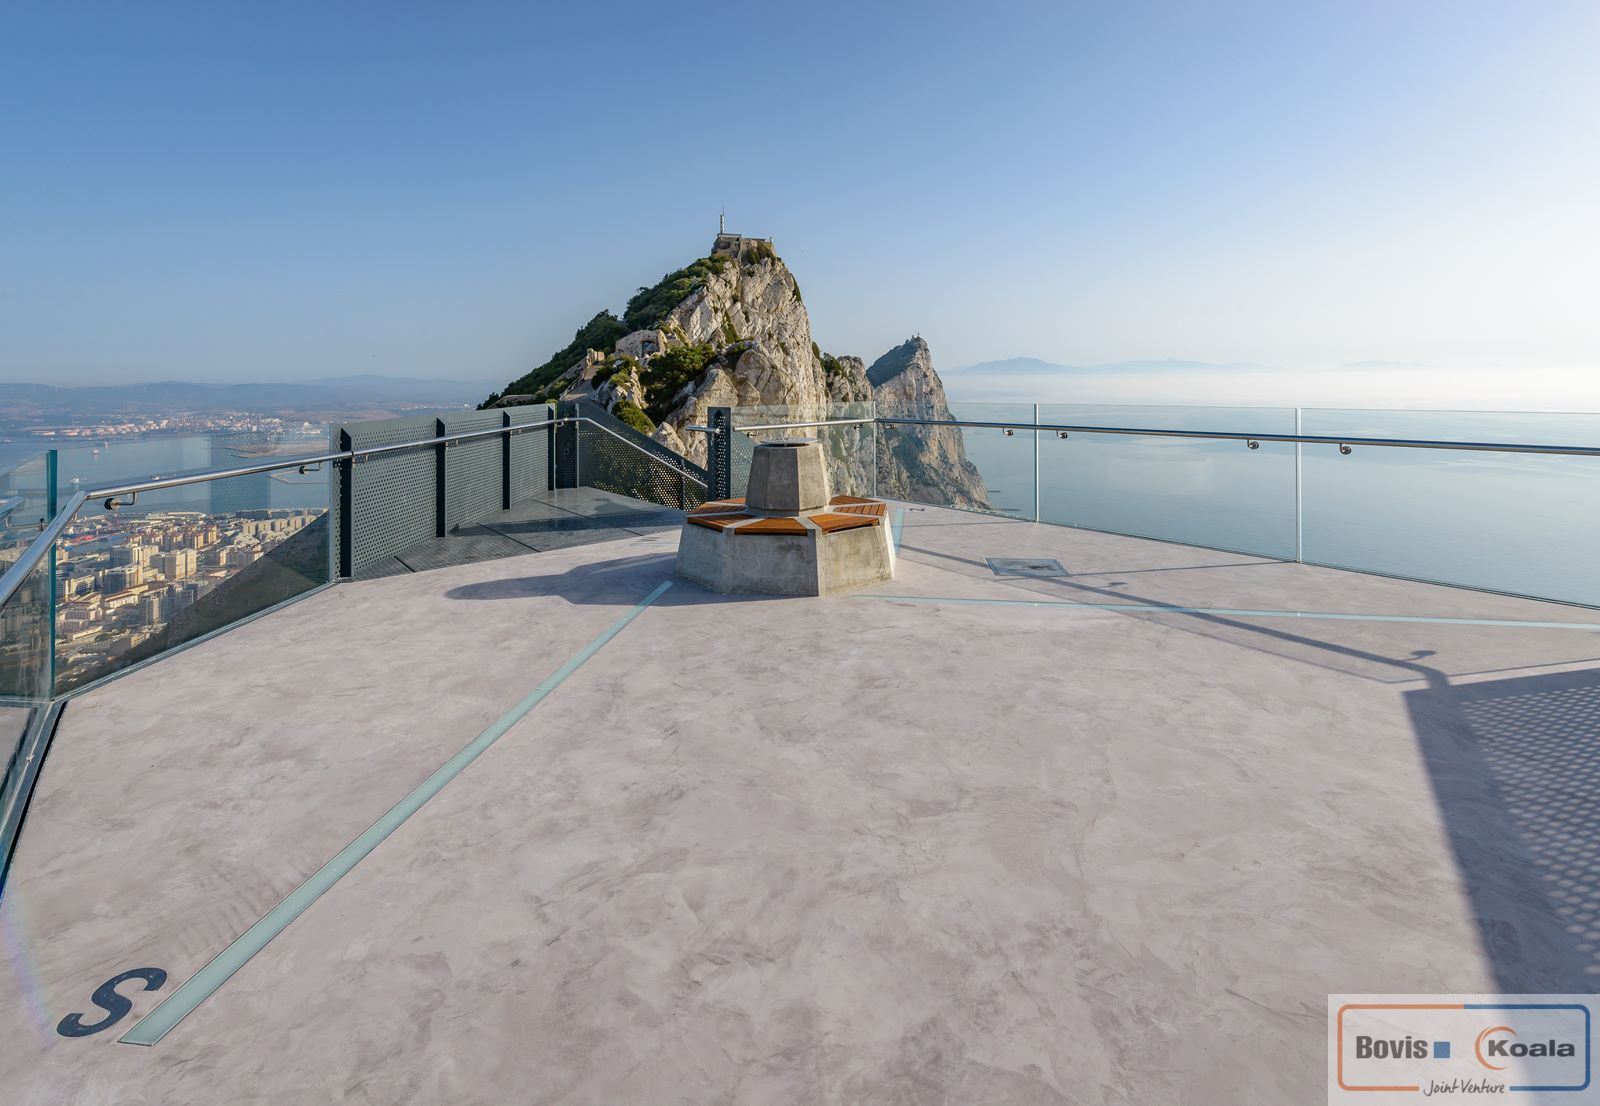 Bovis Koala Skywalk Gibraltar 19